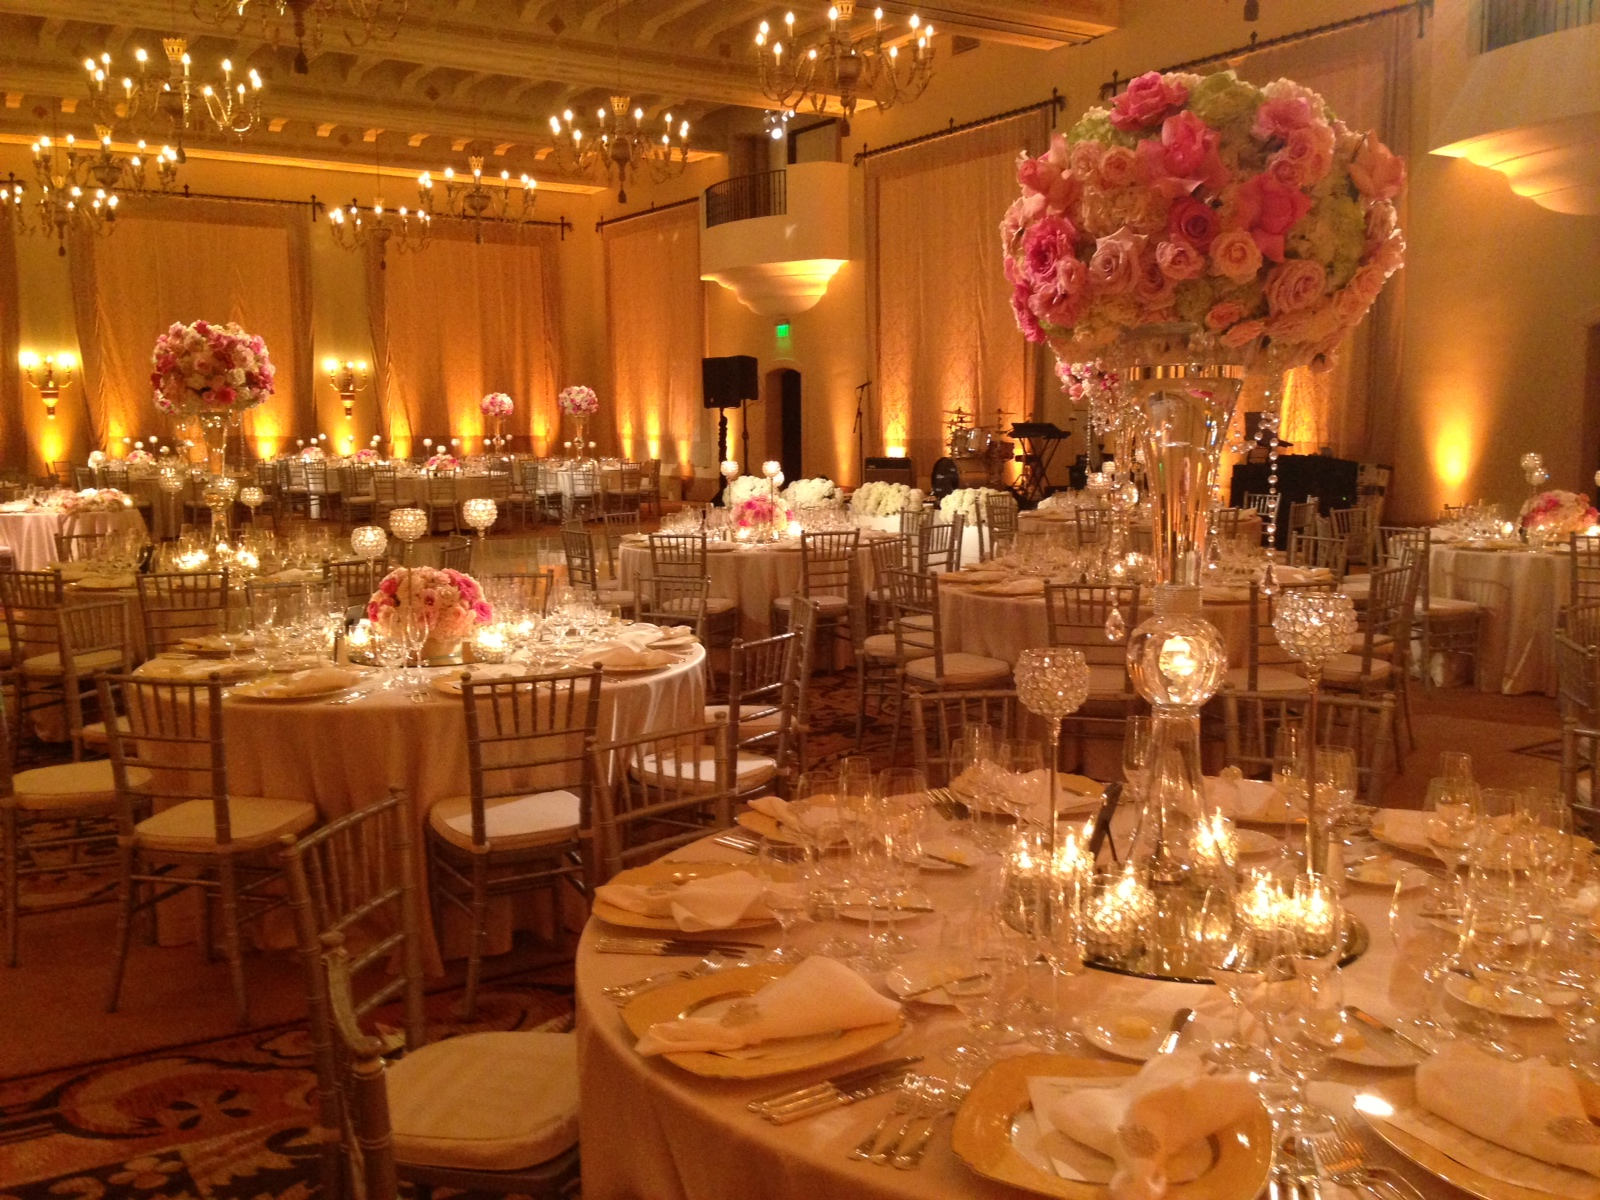 Kimberly Bradford Event Planning Design Los Angeles And Orange County Wedding Planner Beautiful At The Montage Beverly Hills